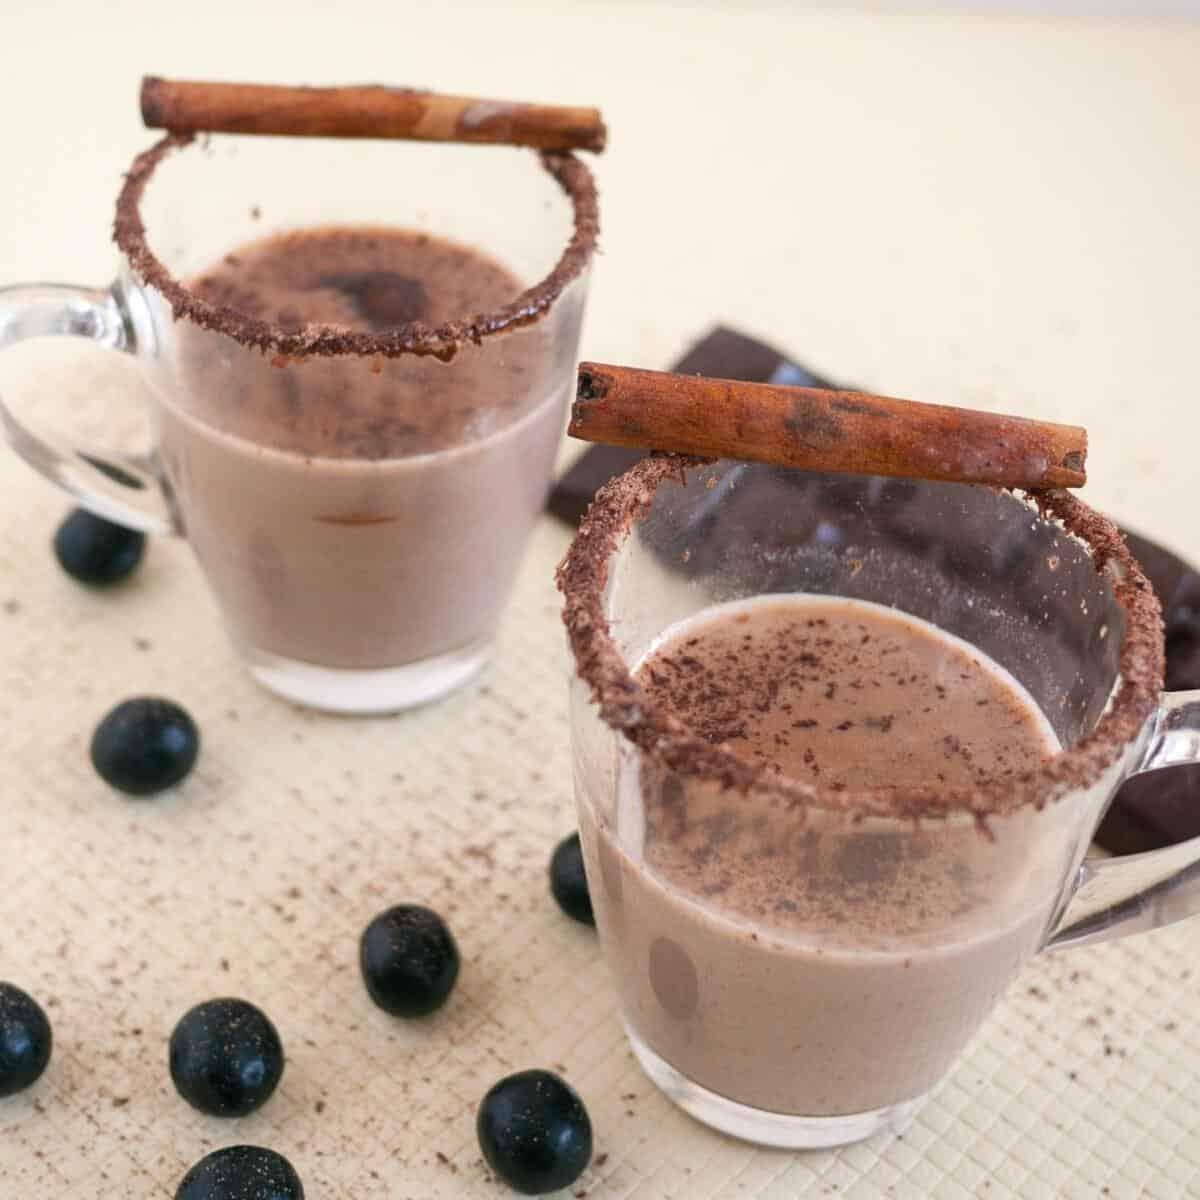 Tow glass cups with hot chocolate